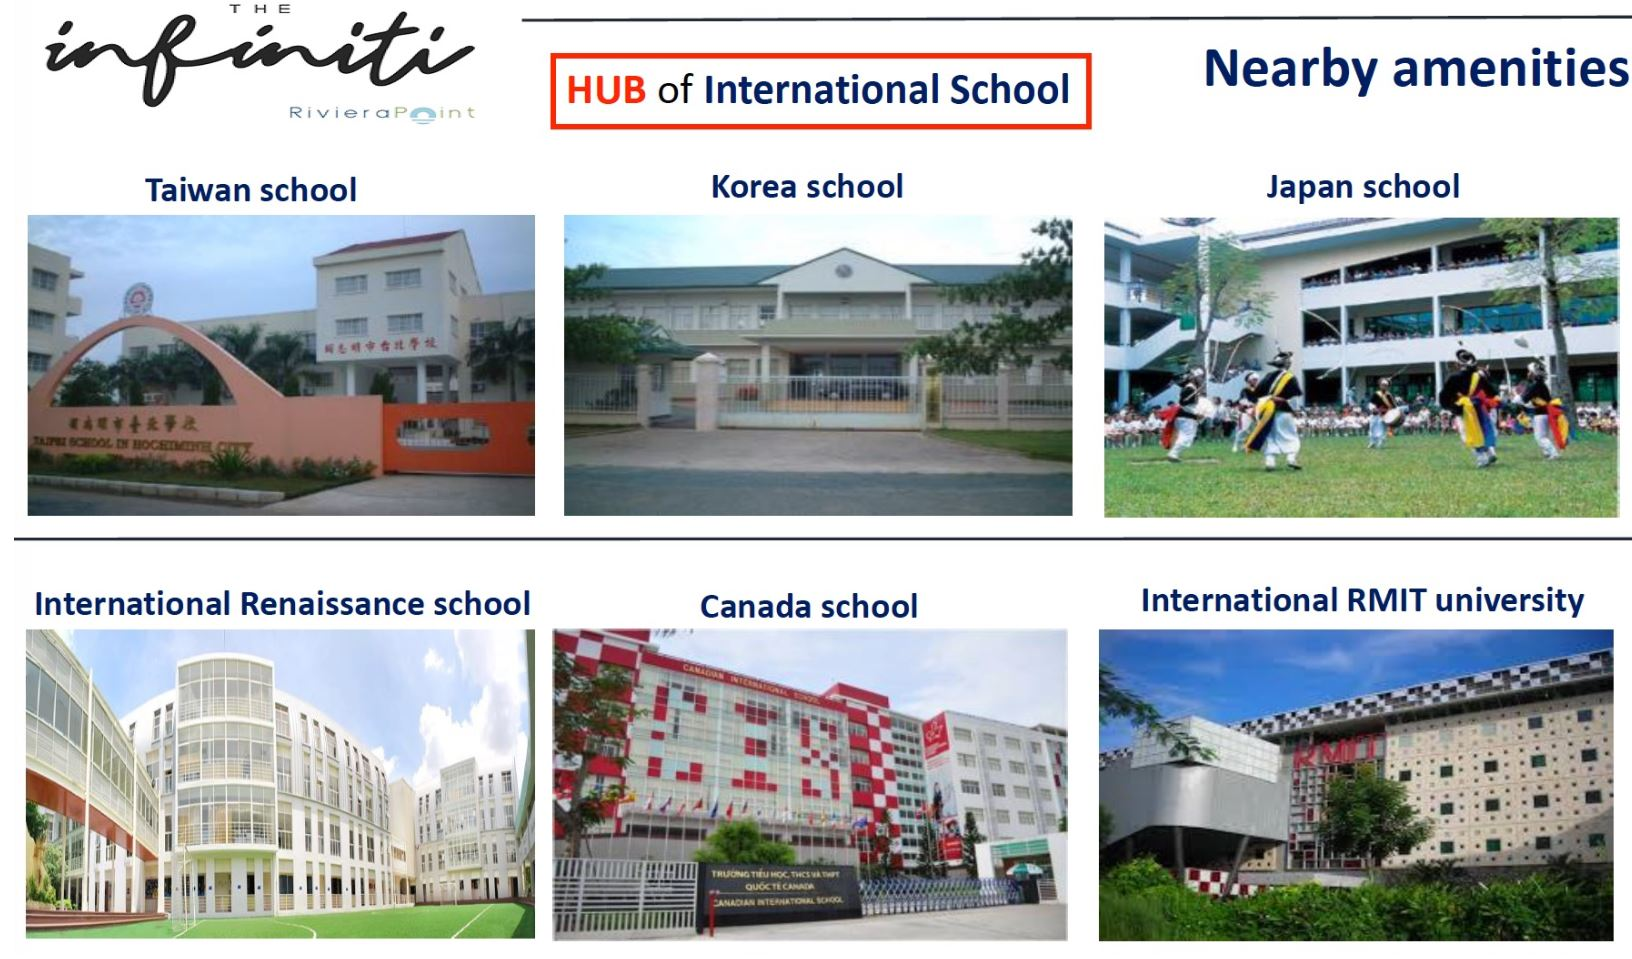 The Infiniti School Amenities